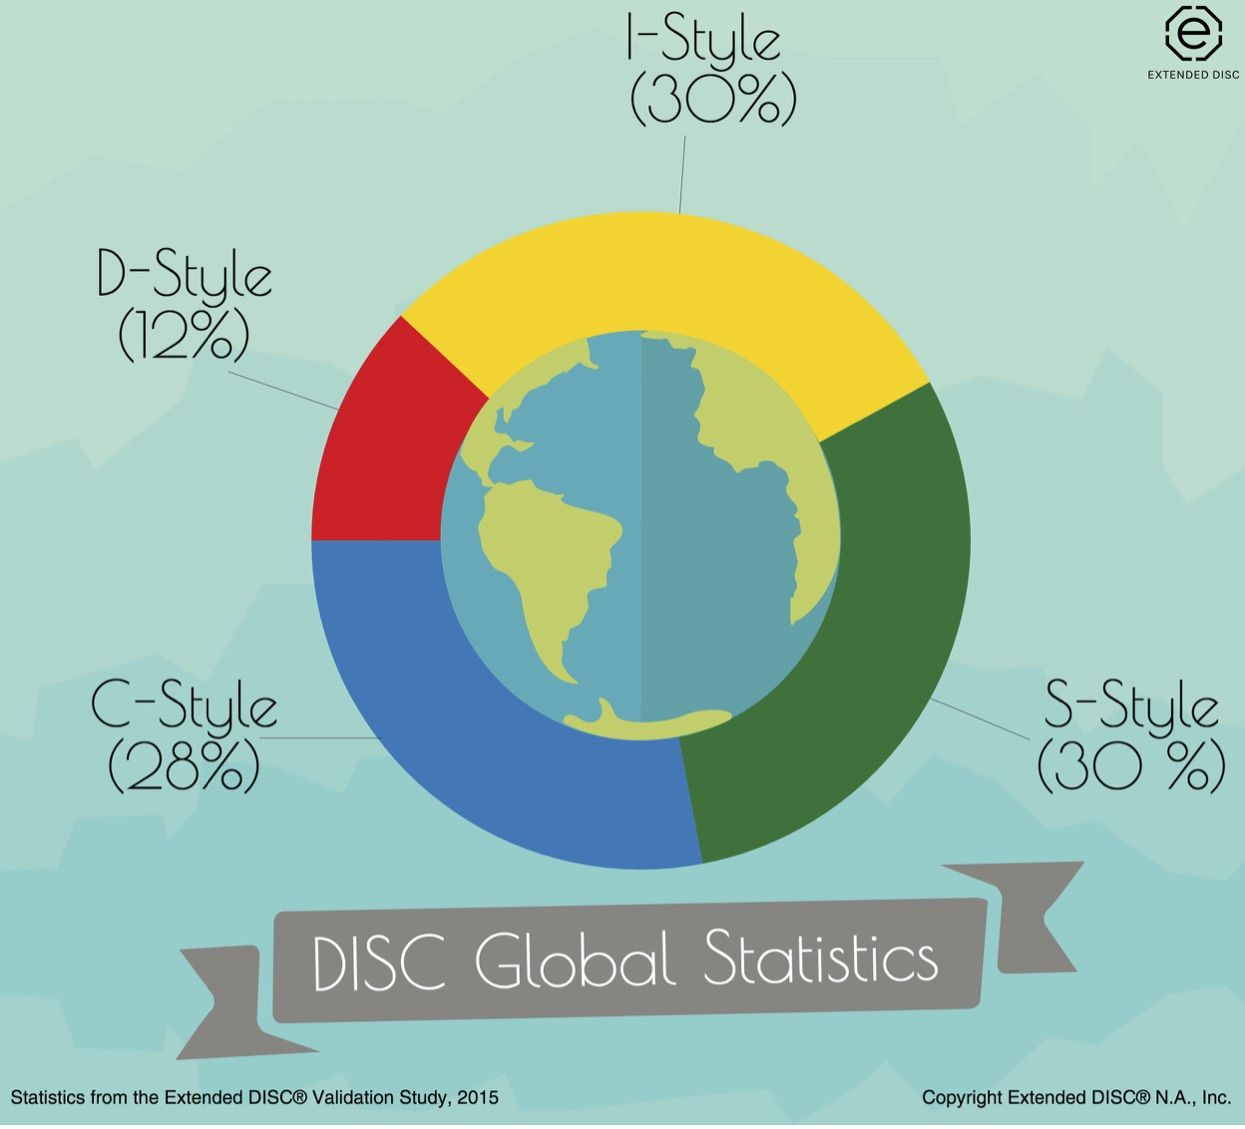 DISC makeup of the global population based on statistics